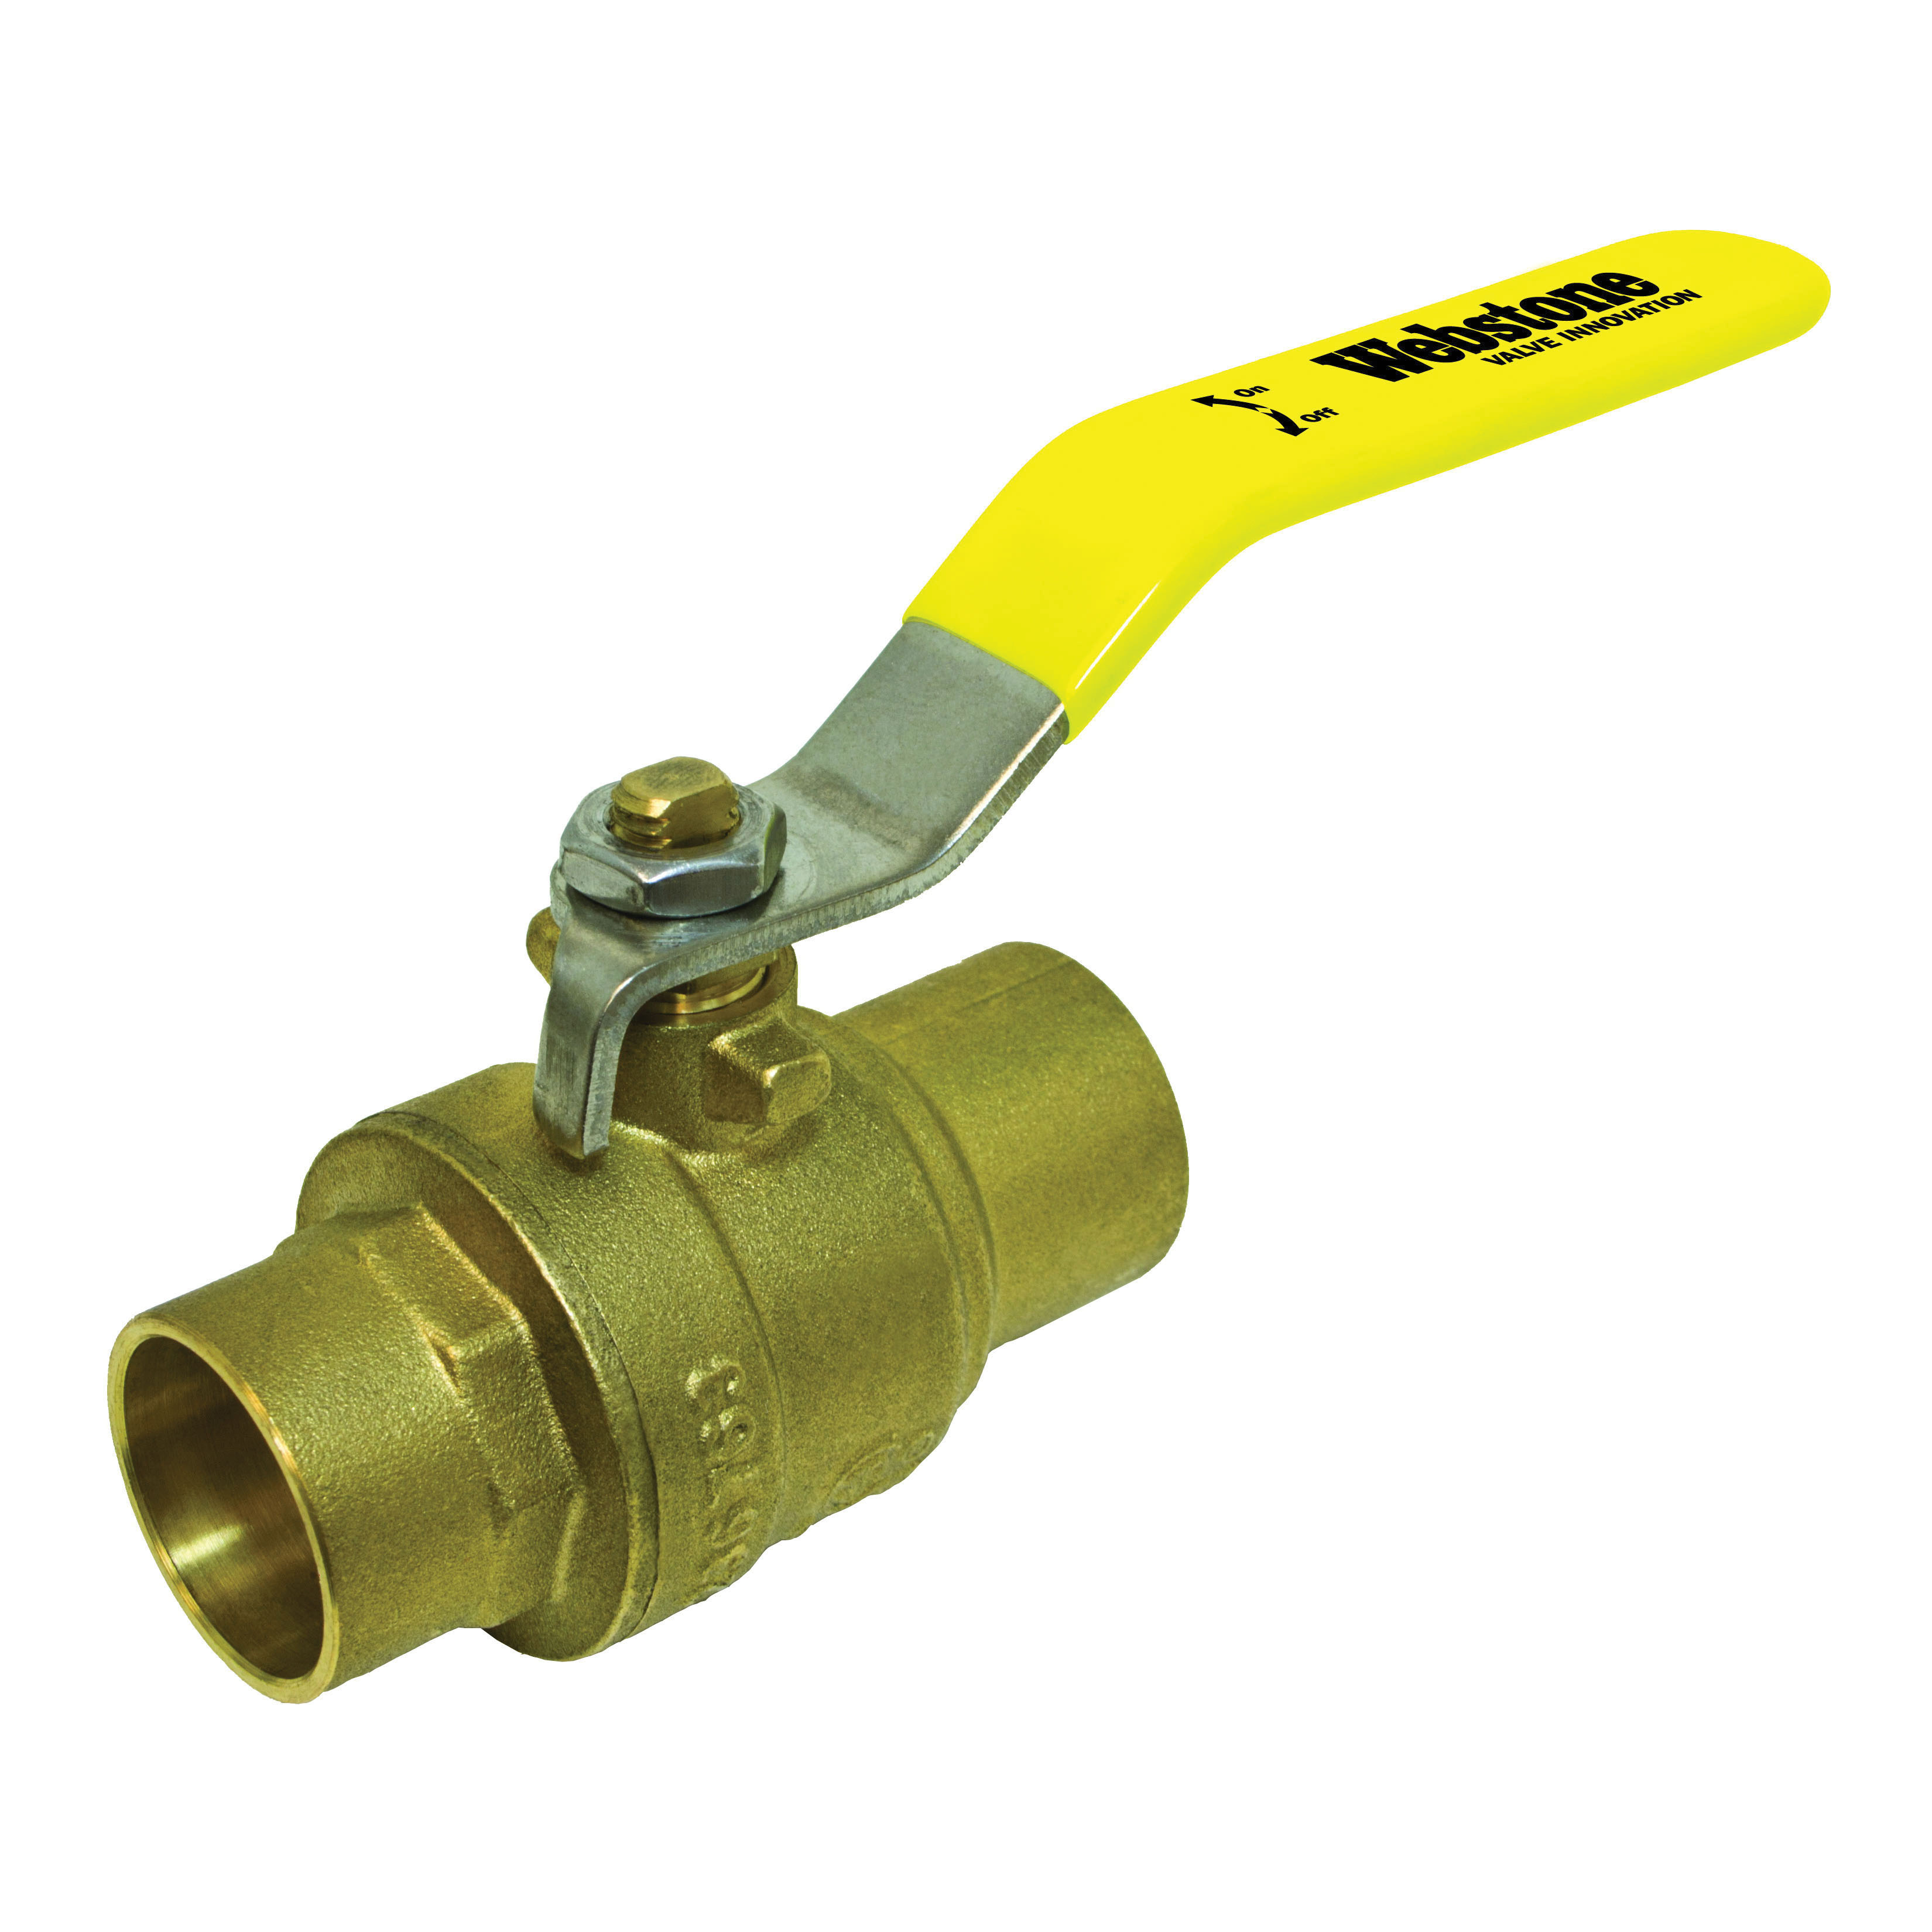 Webstone Clean Brass™ 51702 Ball Valve, 1/2 in, C, Brass Body, Full Port